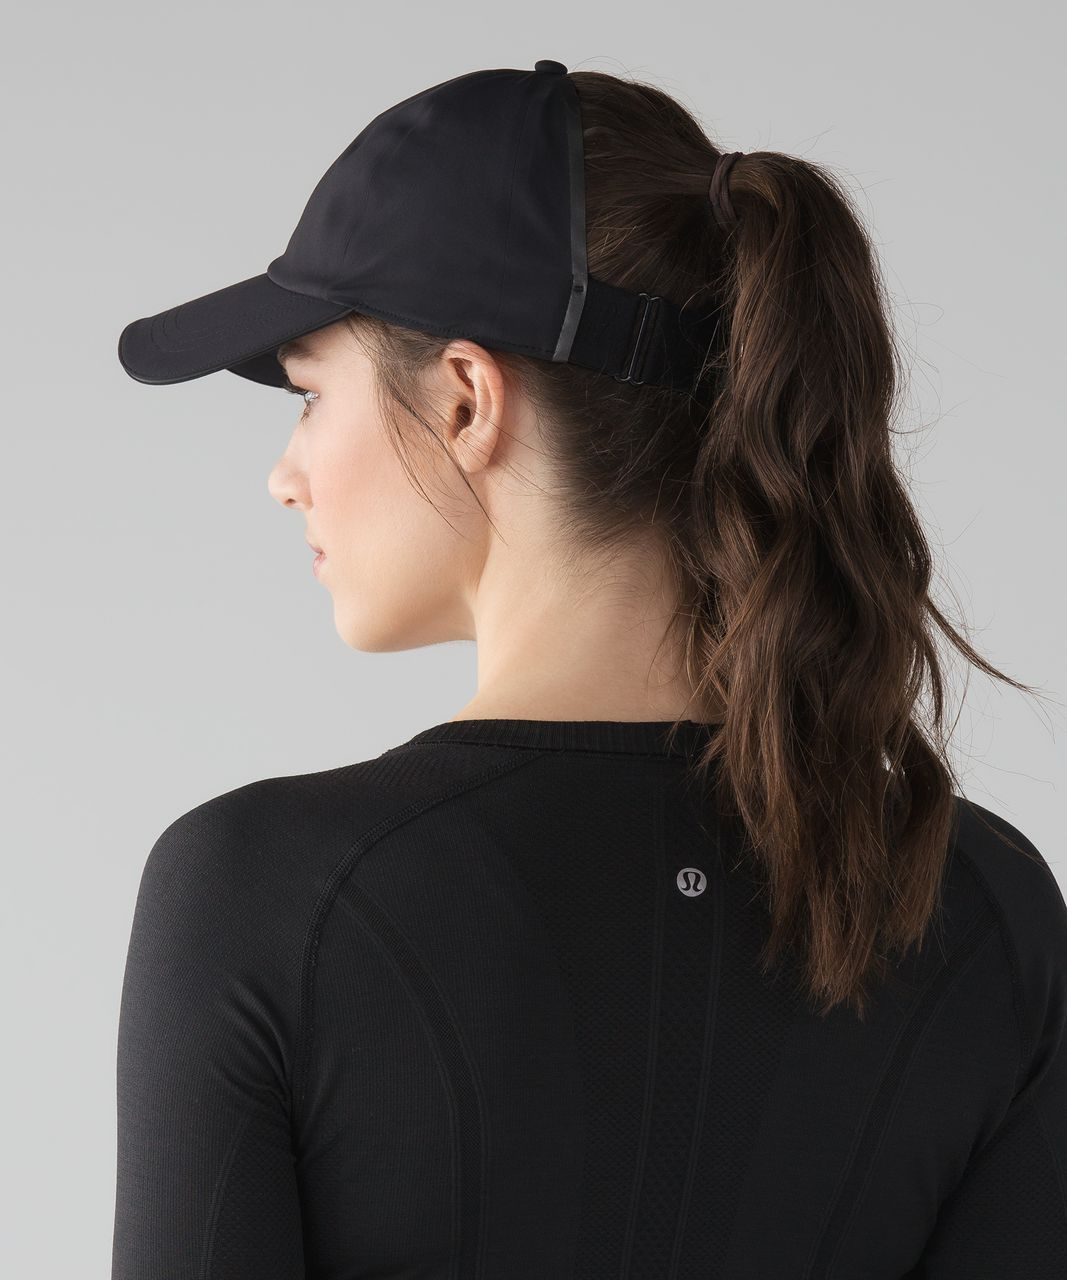 Lululemon Baller Hat Run  Ponytail - Black - lulu fanatics 9a2a47cf666